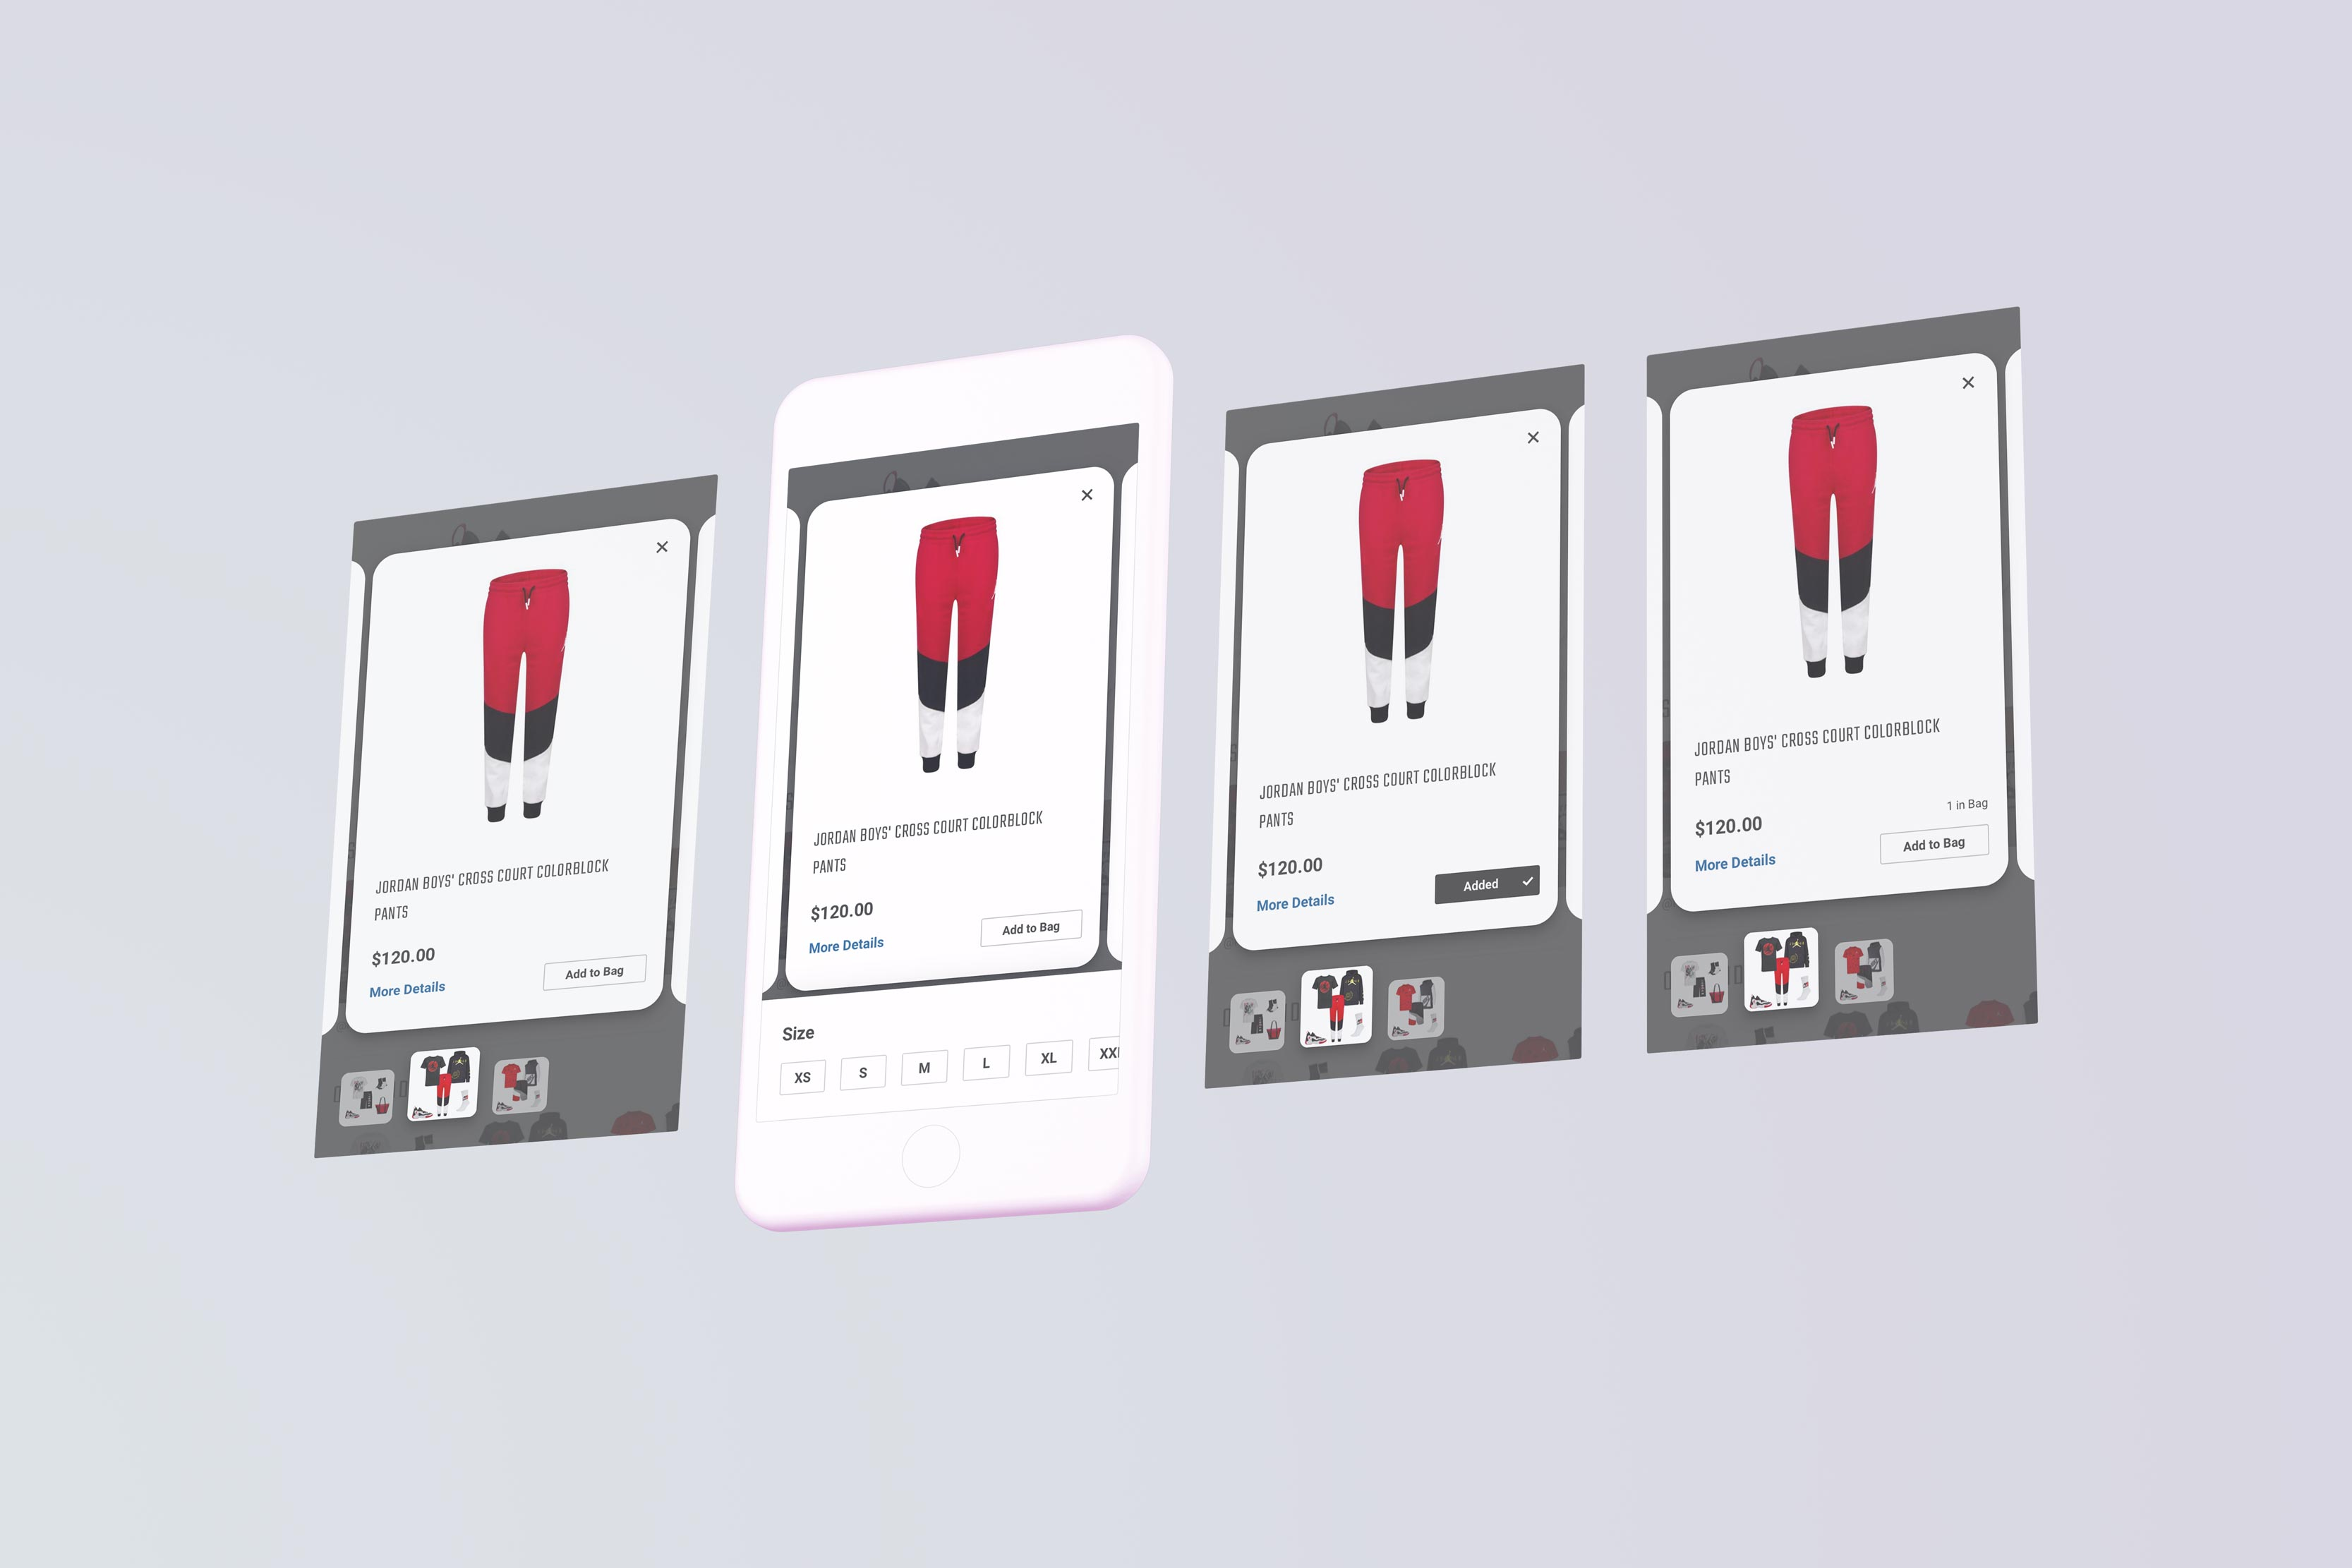 4 screens showing how to add items in an outfit to cart with few clicks.